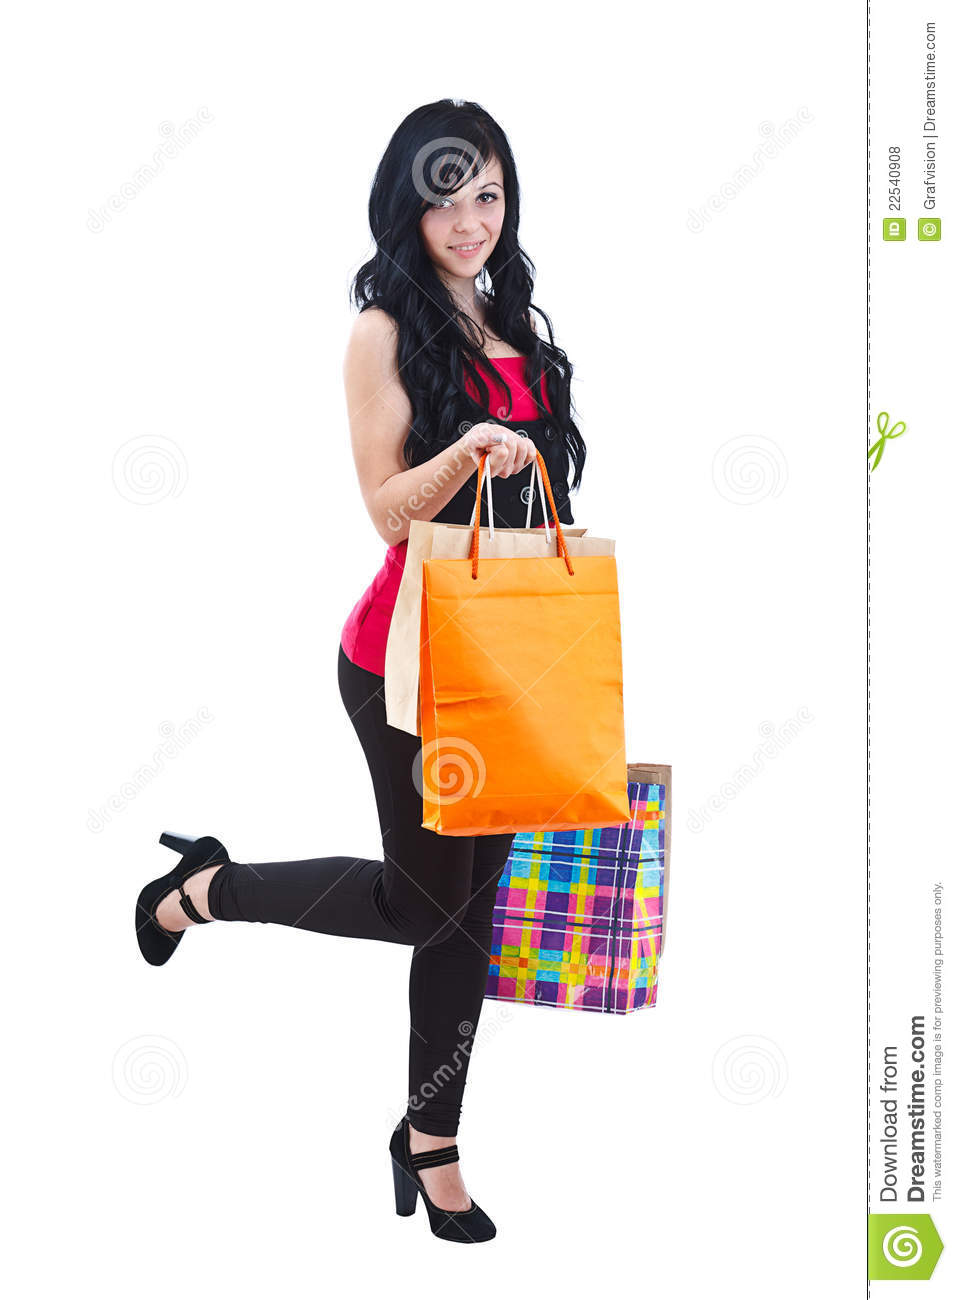 Fantastic Smiling Woman Holding Shopping Bags Royalty Free Stock Photography - Image 25825287